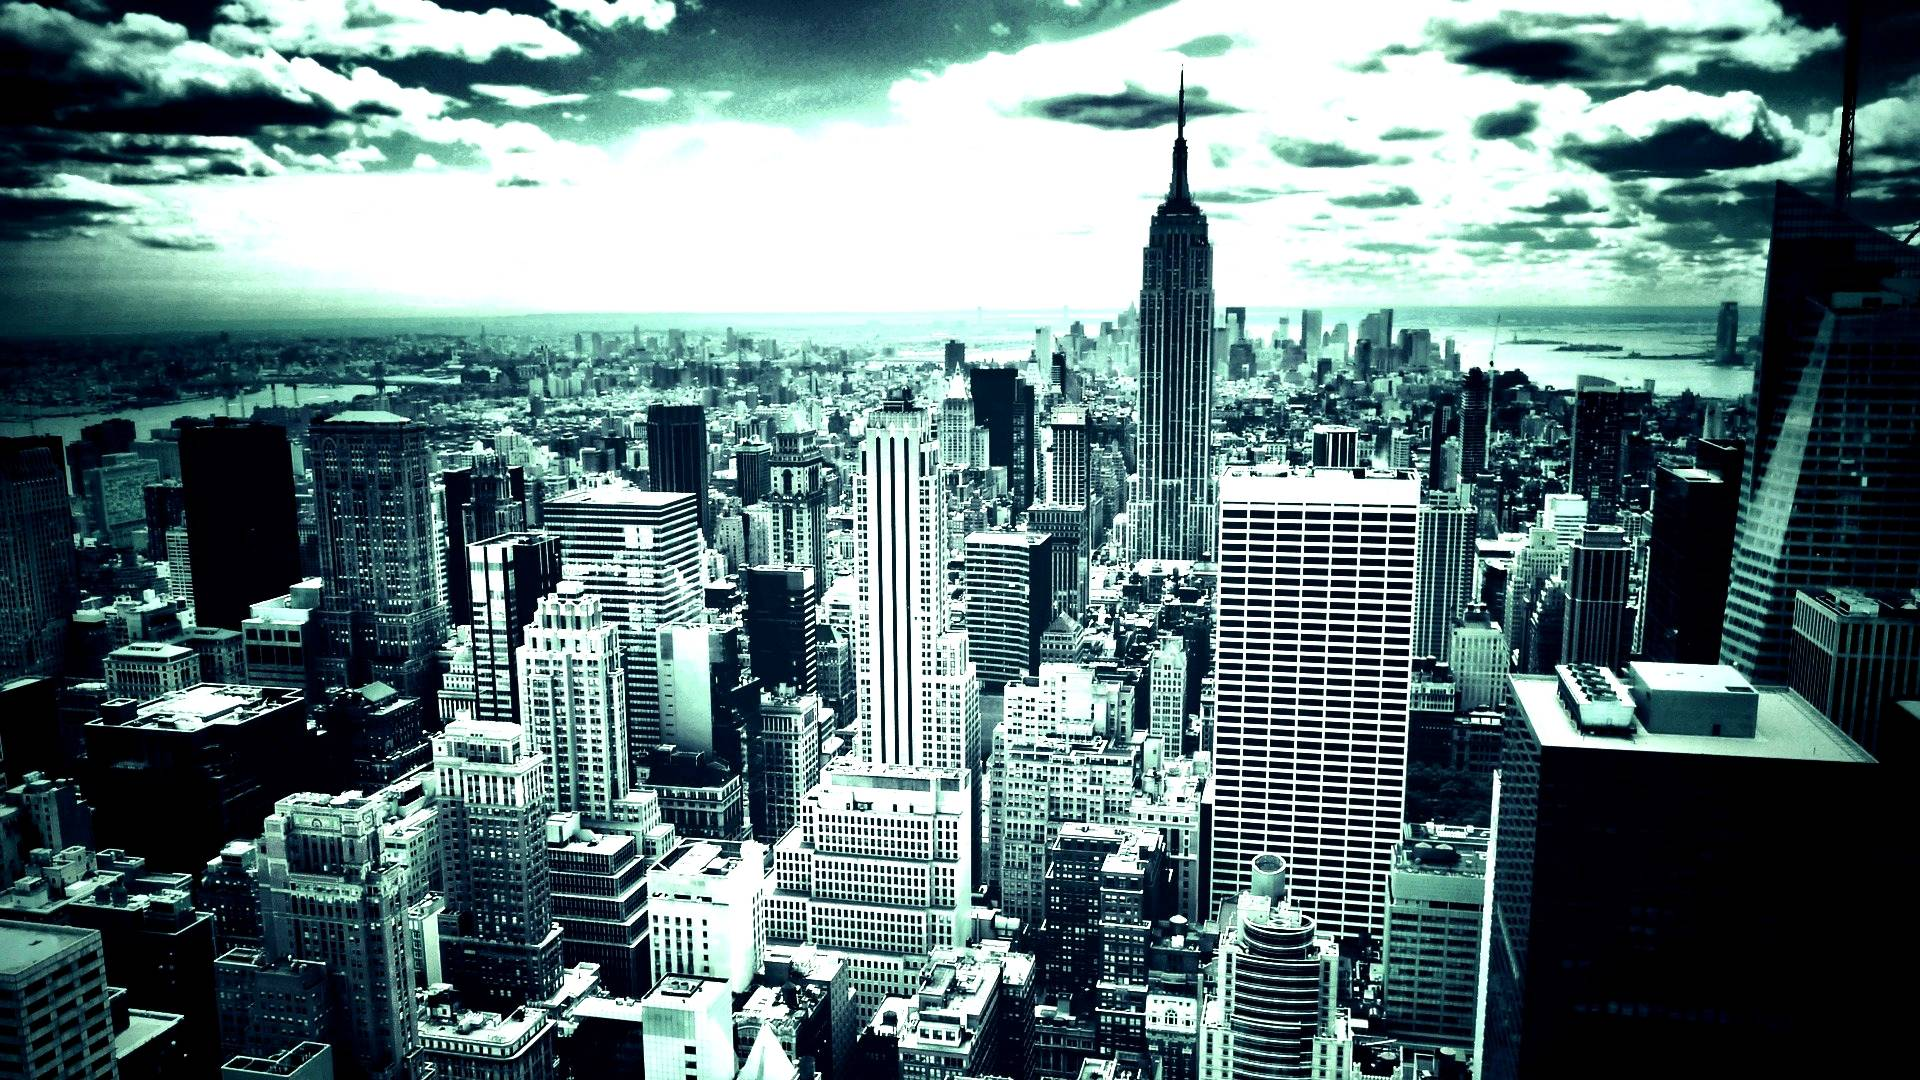 new york city 1920x1080, new york hd images